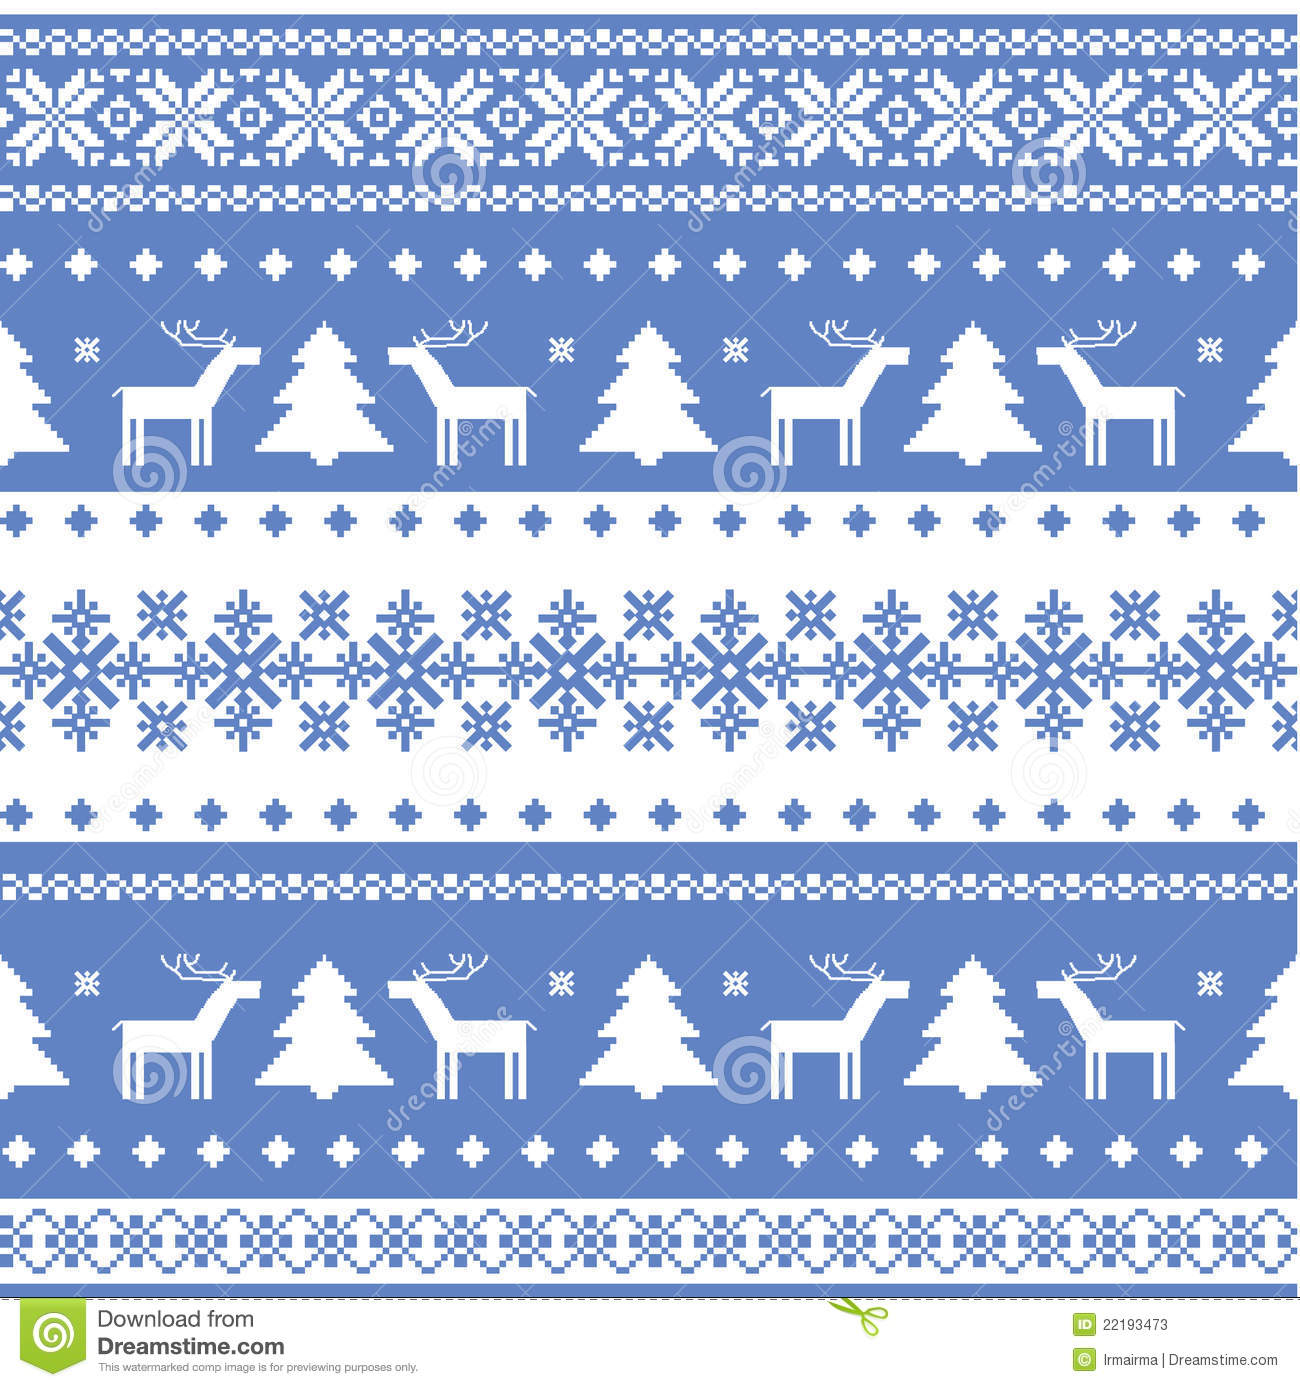 Reindeer Wallpaper Cute Nordic Seamless Christmas Knitted Background Stock Photos